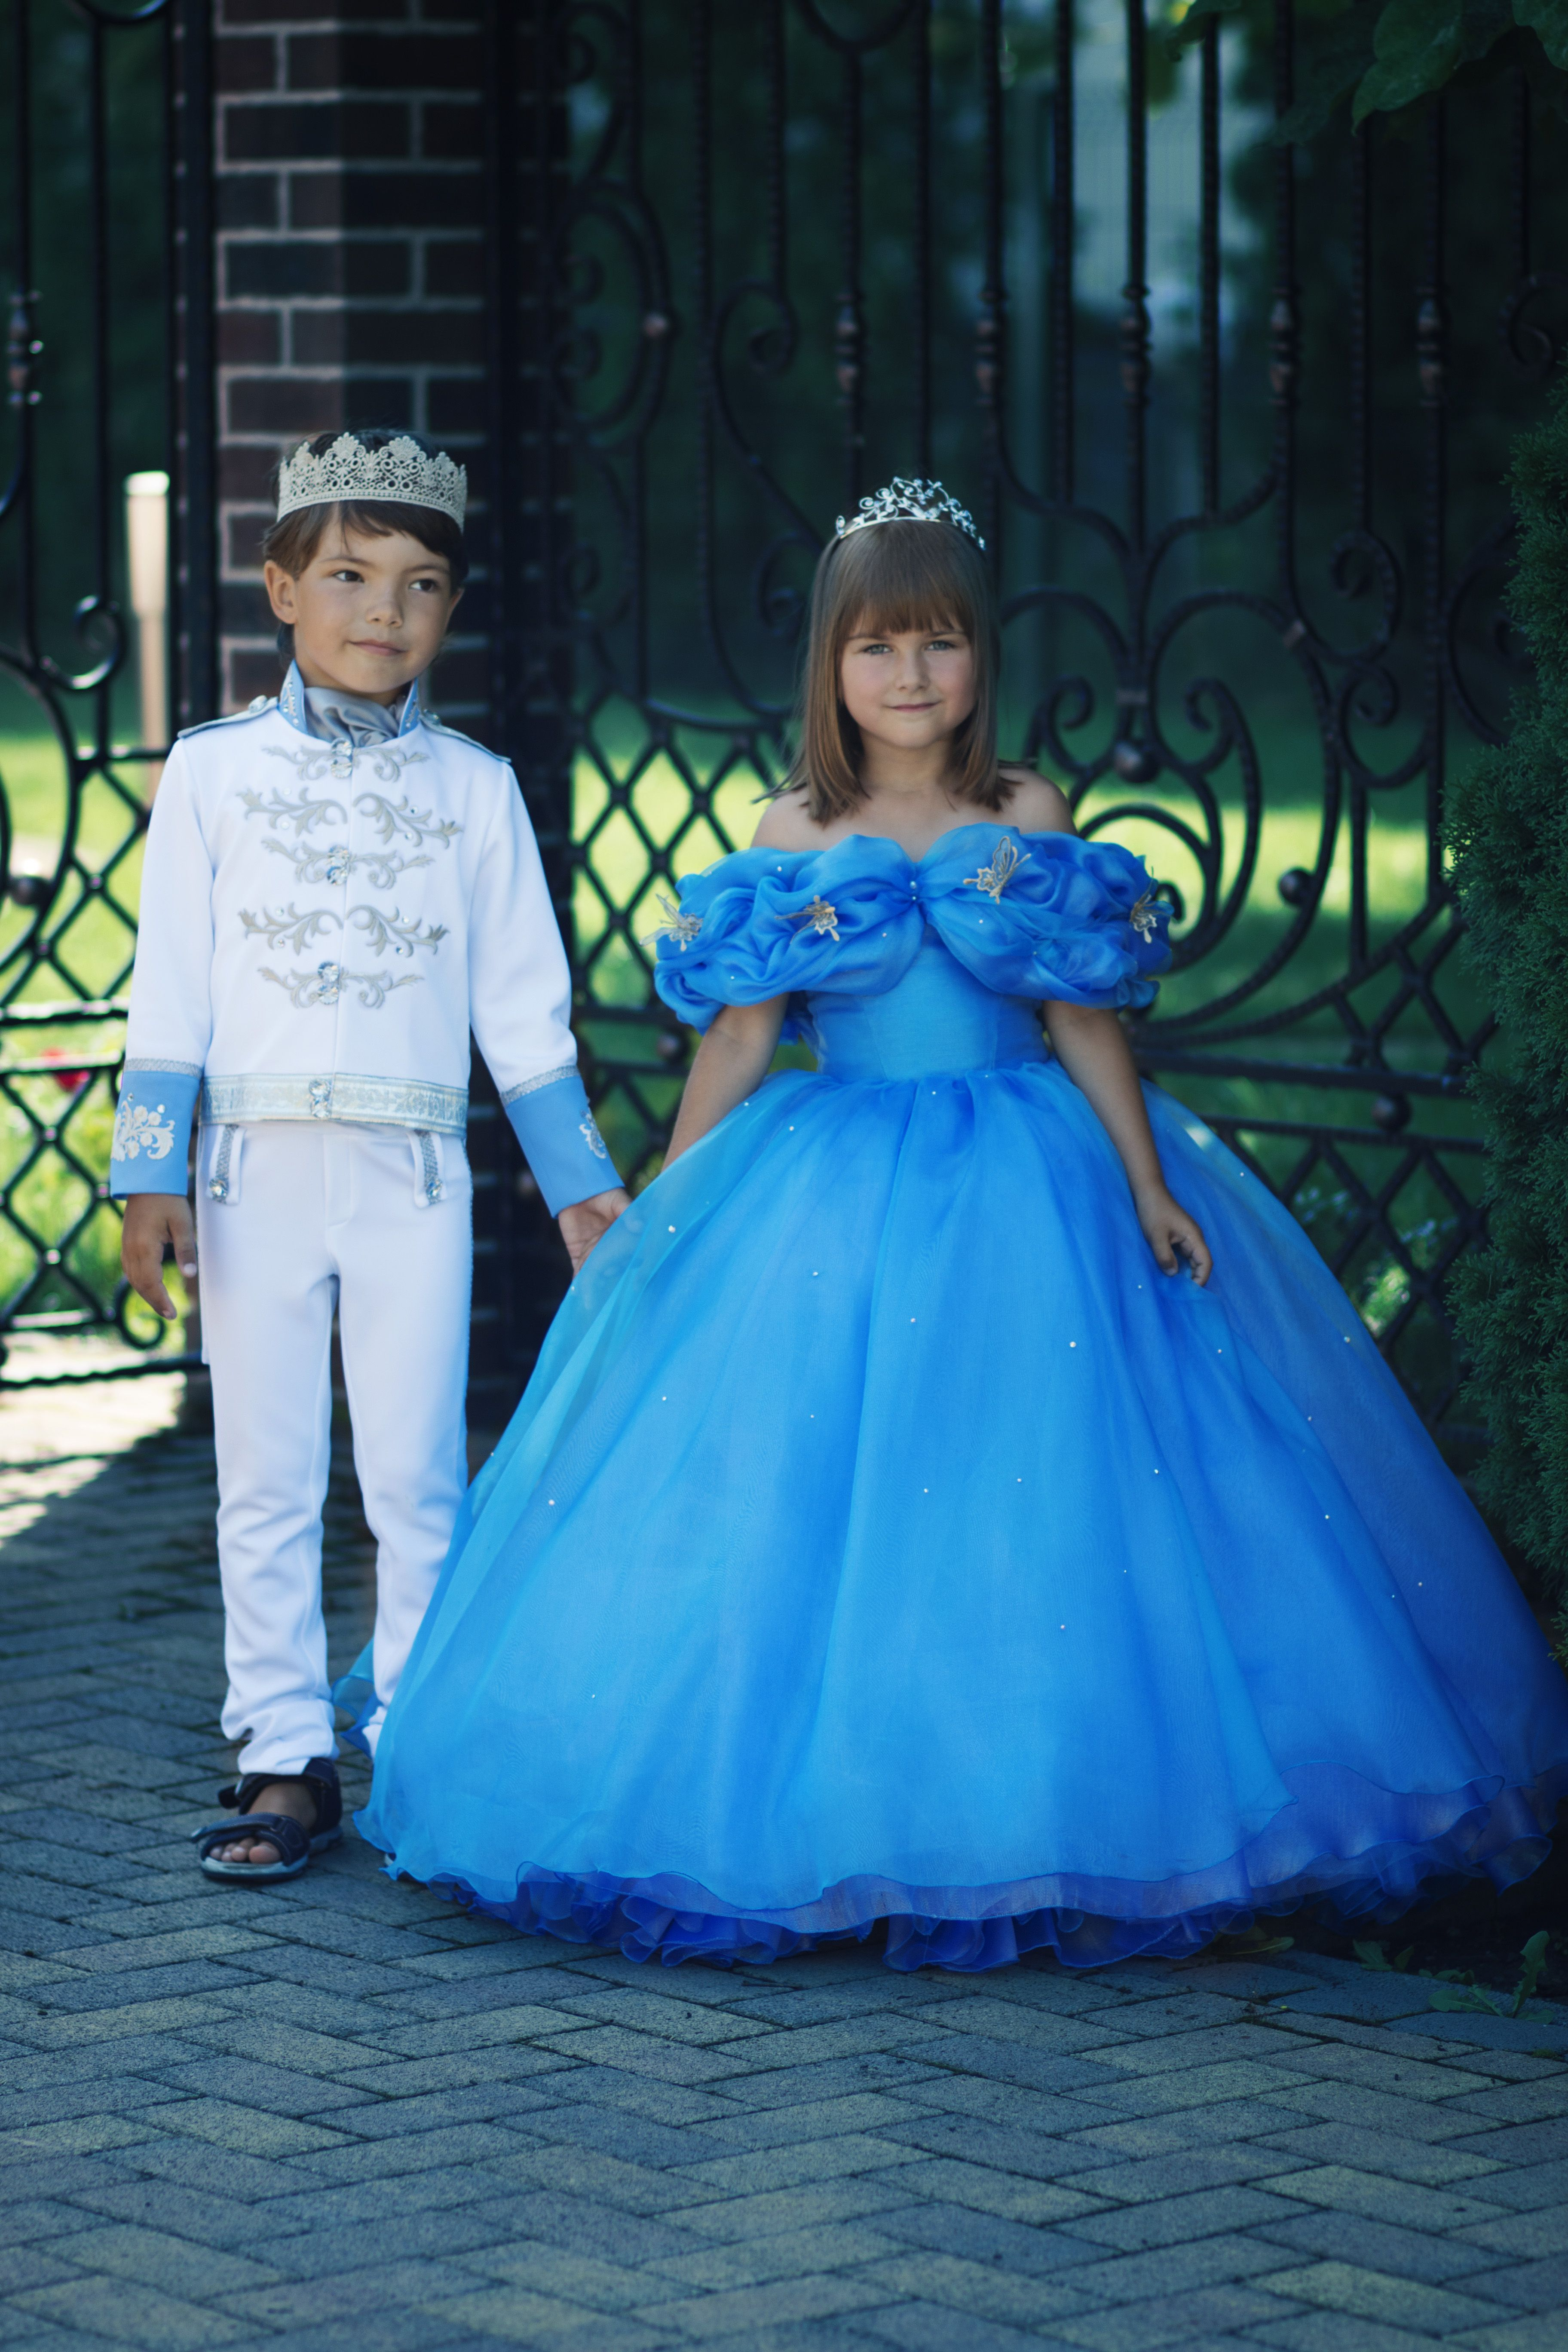 f2747681f3d Cinderella and Prince Charming costumes for boy and girl Disney Cinderella  movie 2015 cosplay Halloween outfit Wedding ring bearer suit and flower  girl ...